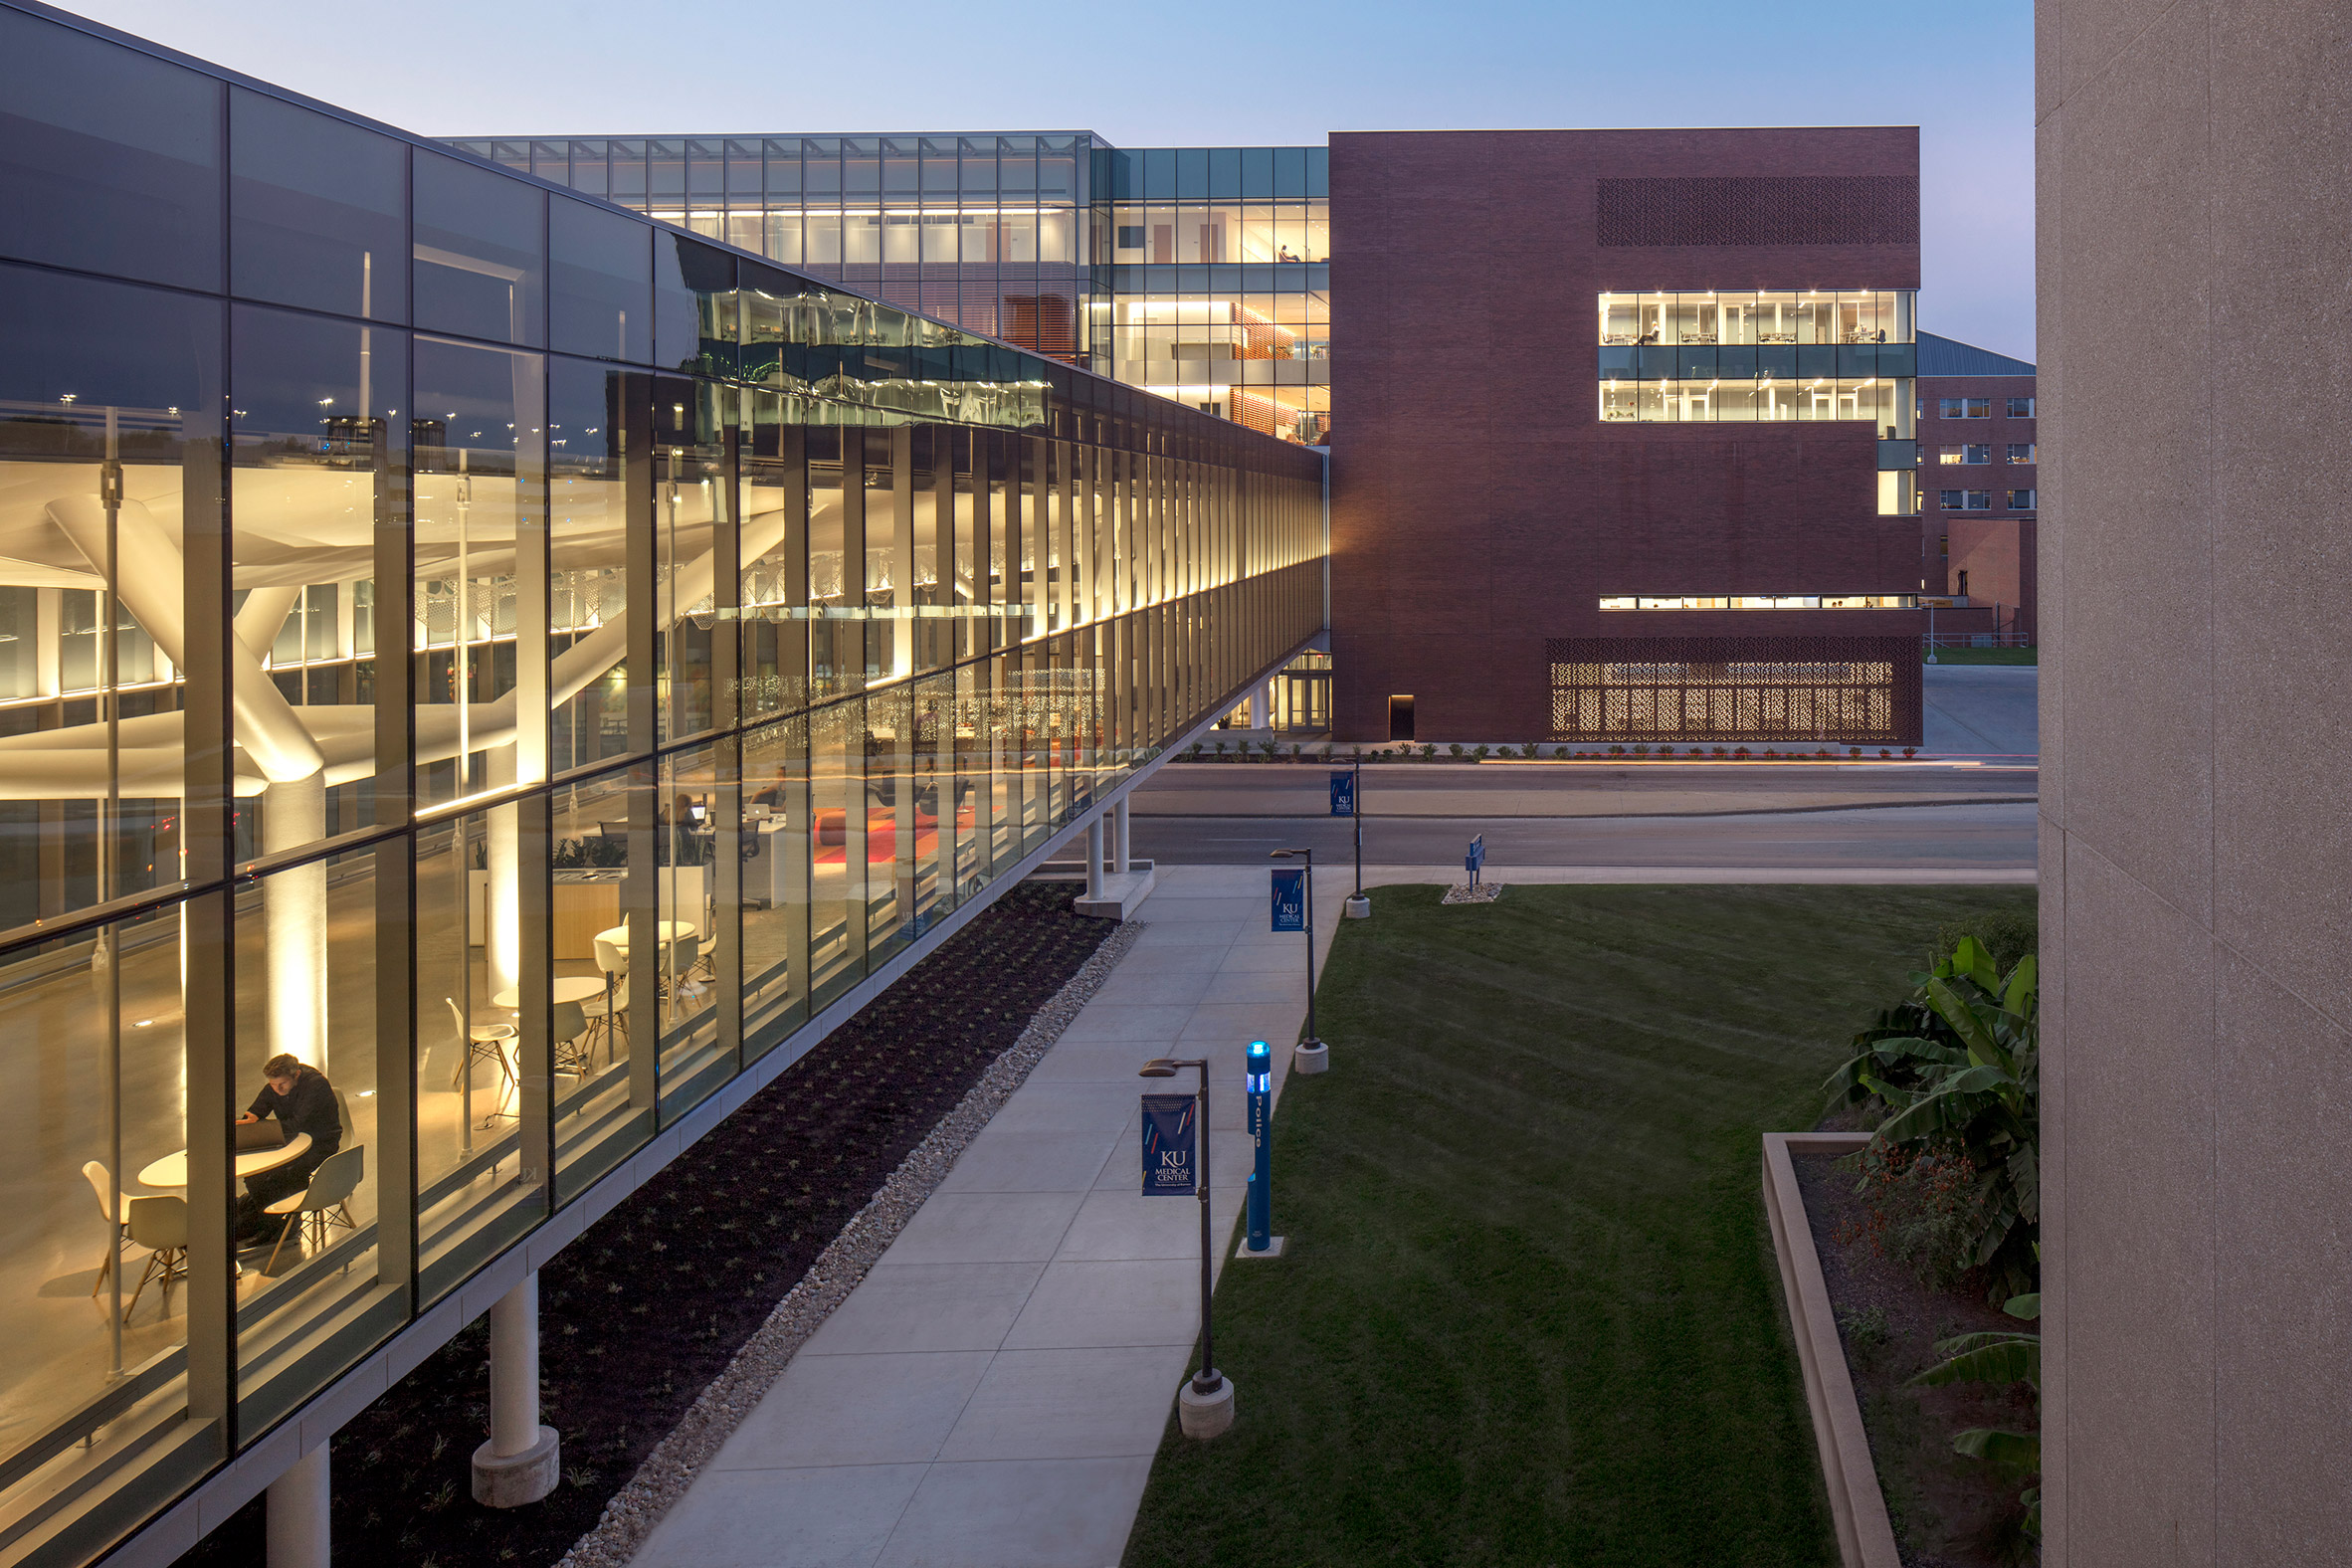 medical-center-university-of-kansas-co-architects-architecture-kansas-city-usa_dezeen_2364_col_6.jpg